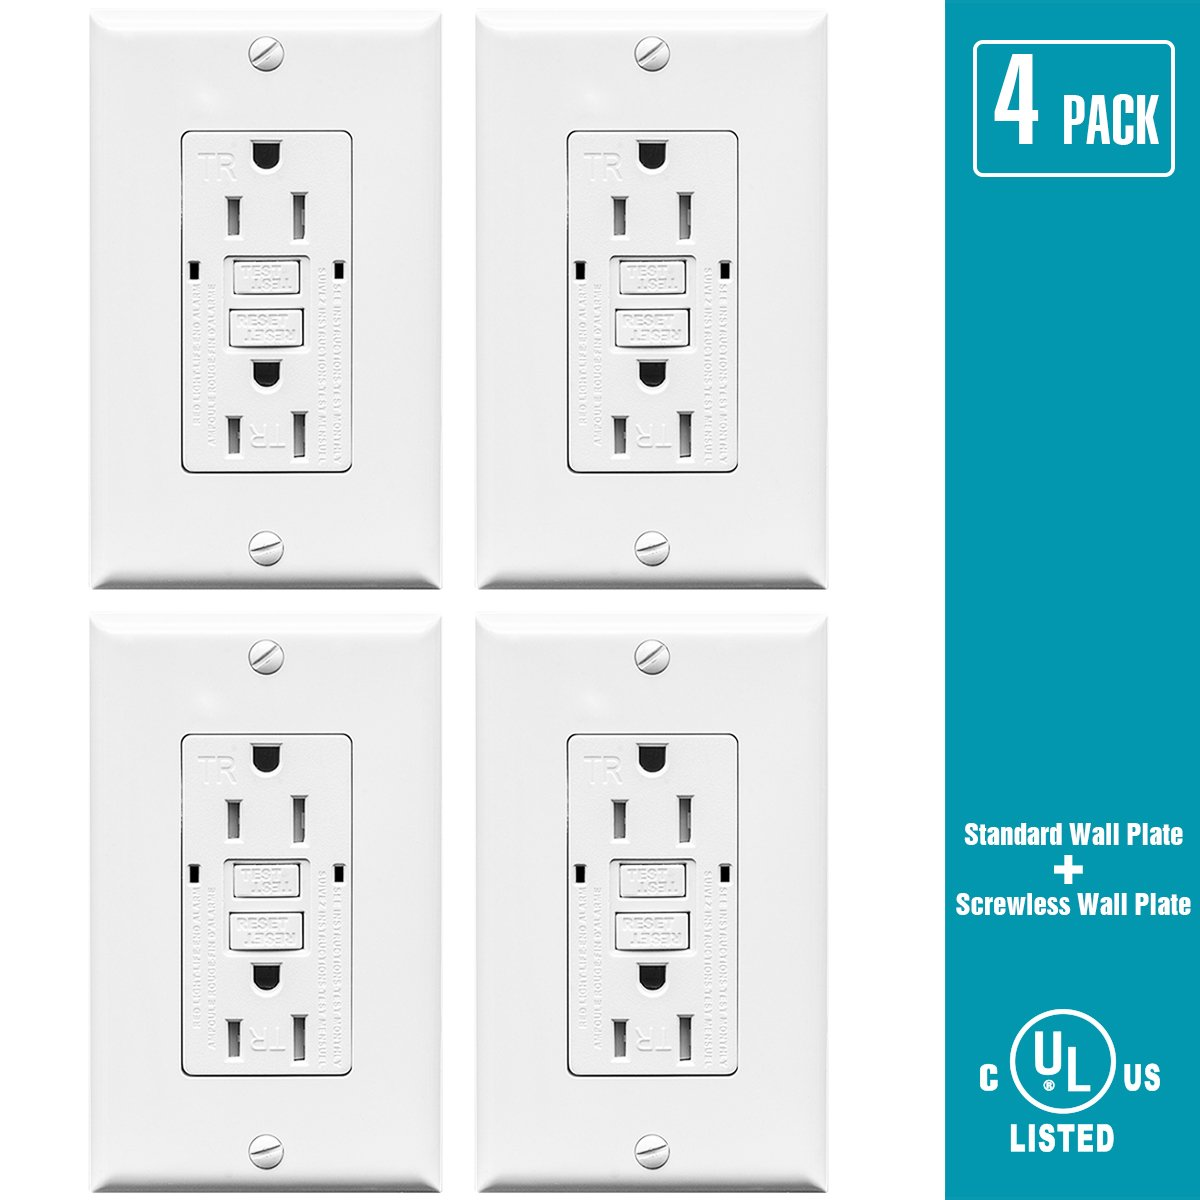 TOPELE 15A GFCI Outlet 125 Volt Tamper-Resistant Receptacle, Indicators with LED Light, 2 Wall Plates and Screws Included, White, UL Listed (Pack of 4) TOPELE ENTERPRISE CO. LTD.